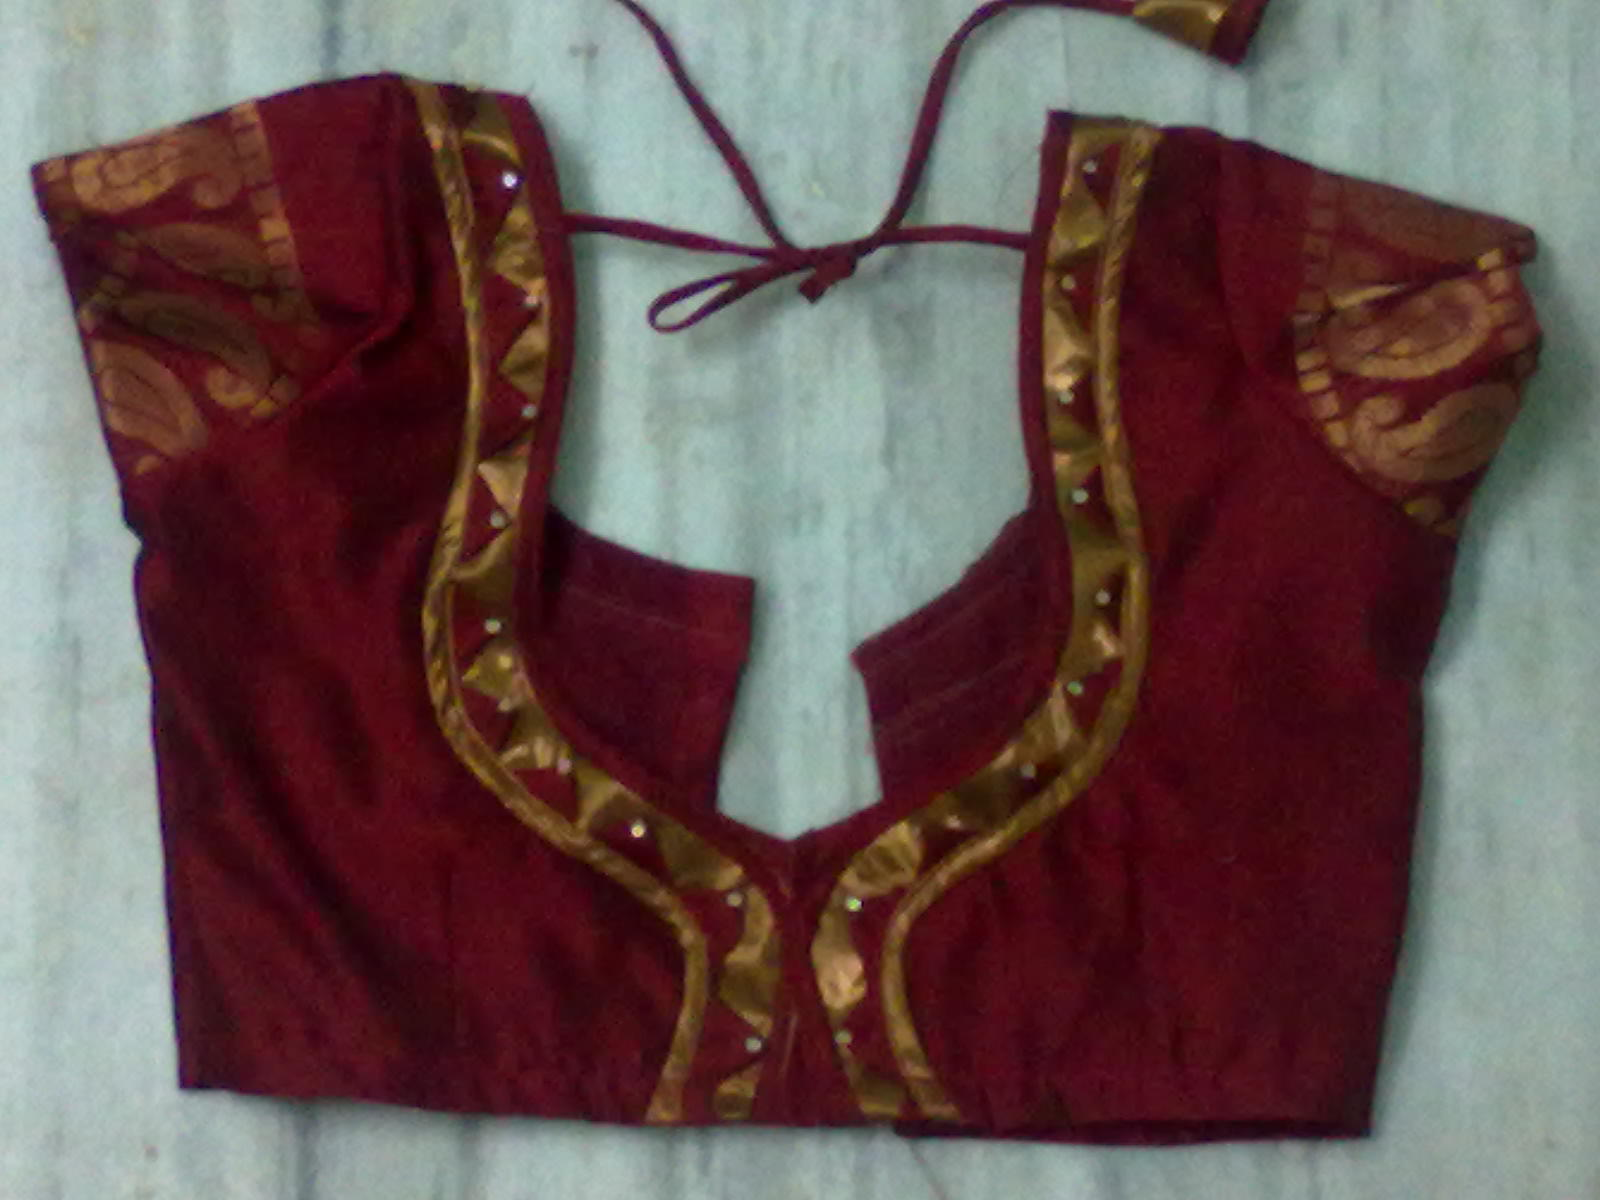 Indira designs: Used to stitch blouses new model pattern